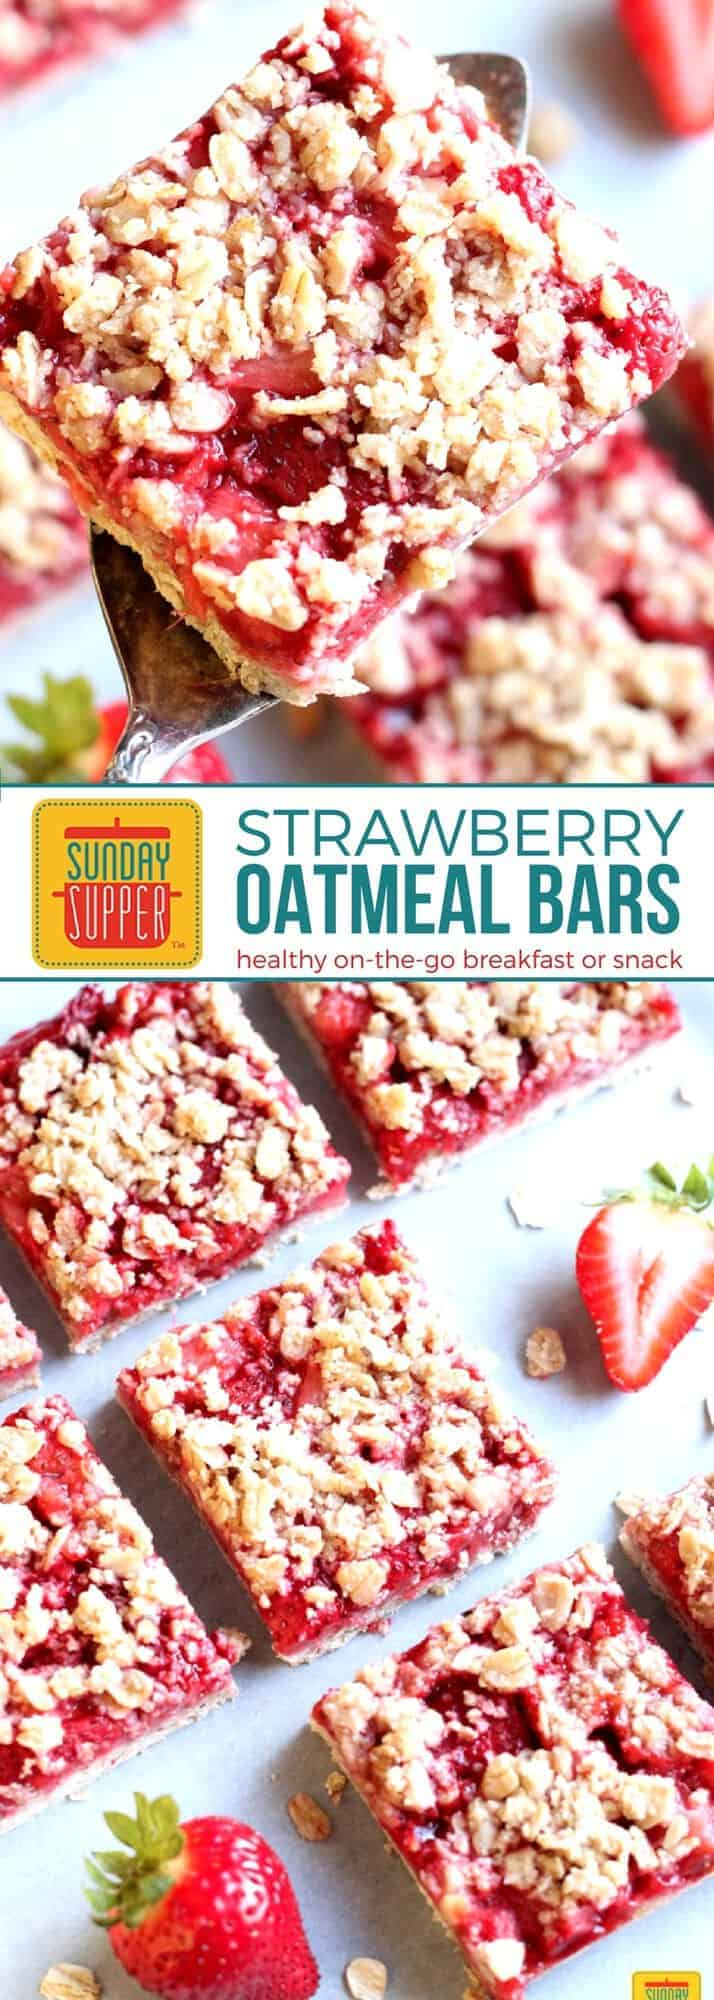 For a QUICK on-the-go breakfast or snack you NEED our Sunday Supper recipe for Healthy Strawberry Oatmeal Bars. Easy to make & delicious, fresh strawberries and rolled oats get your day started on the right note. Add this easy recipe to your list of favorite Healthy Family Recipes! #SundaySupper #FLStrawberry #BreakfastRecipes #StrawberryRecipes